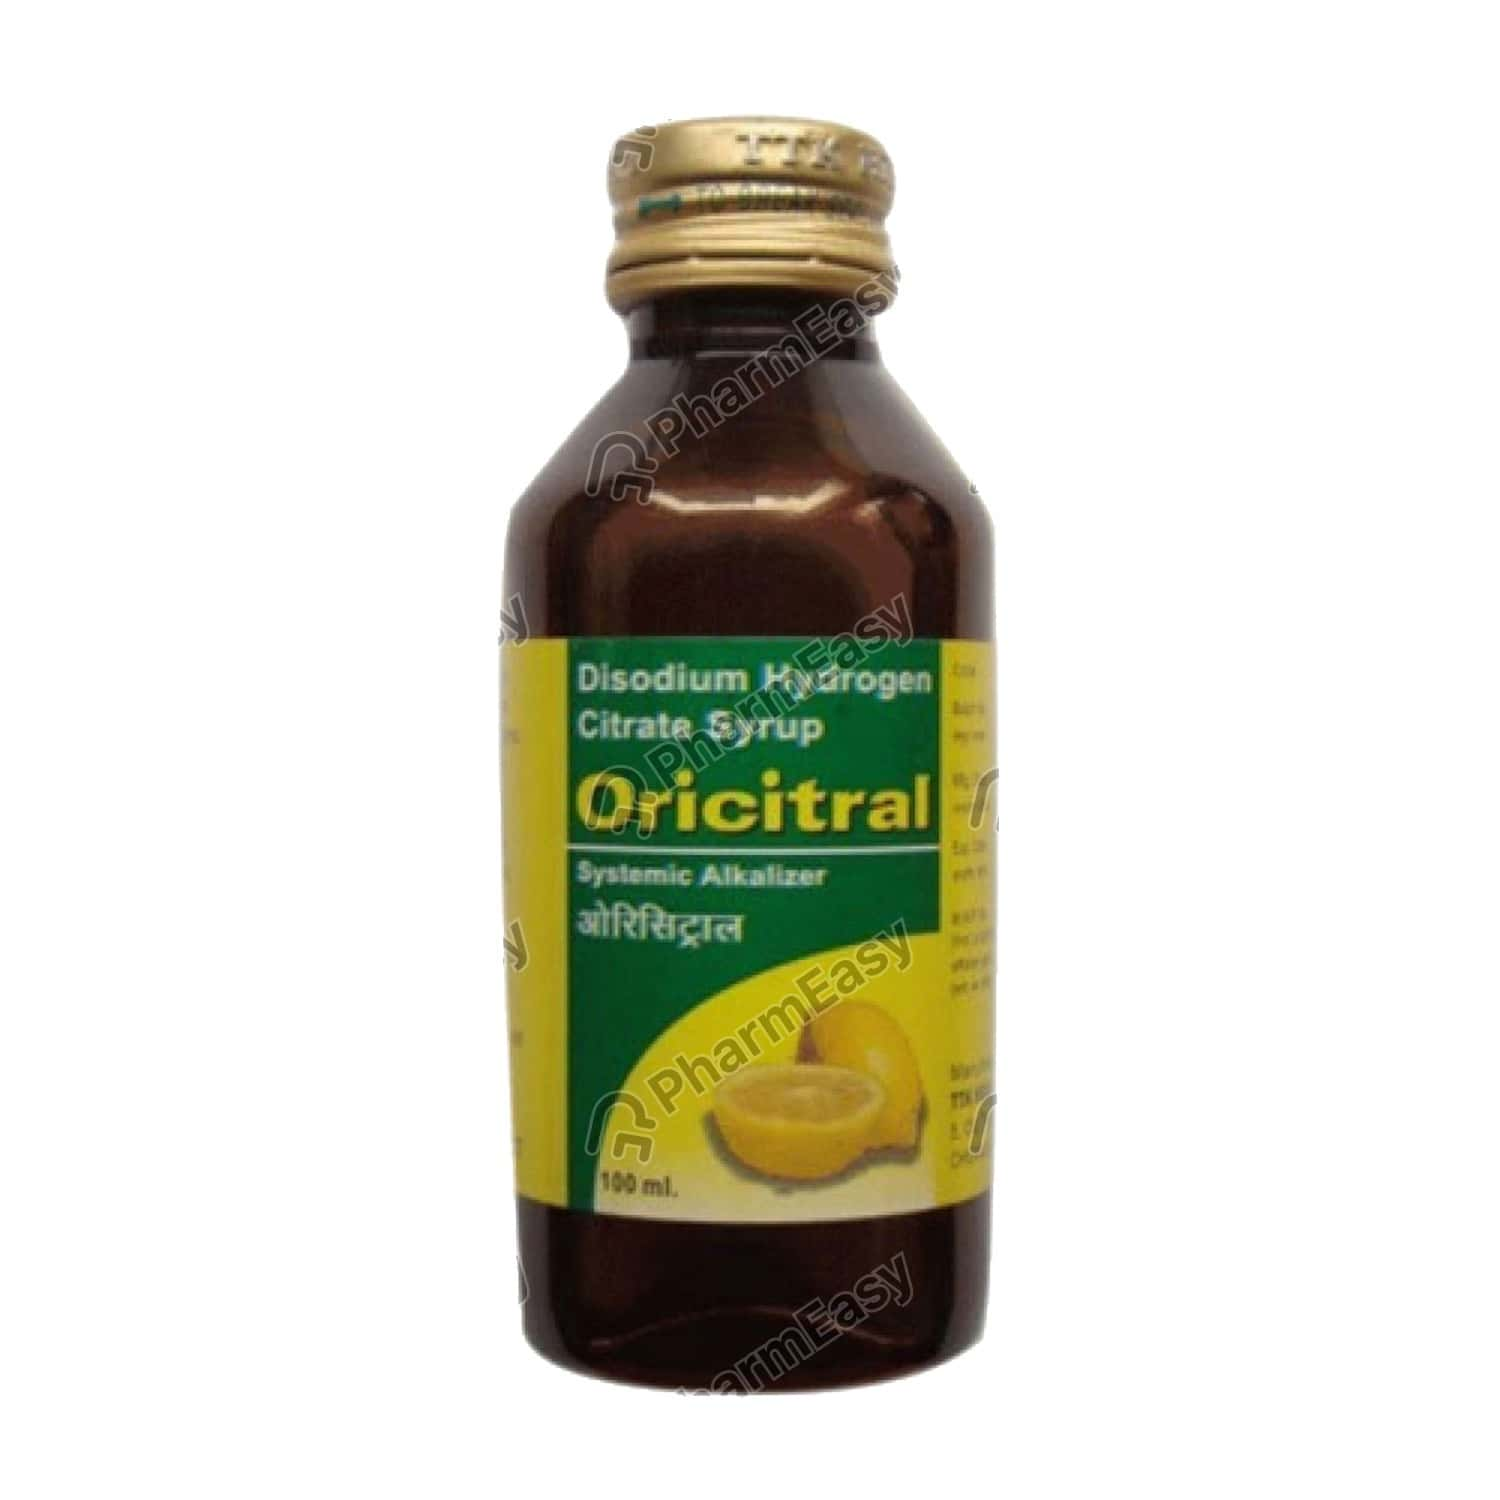 Oricitral Syp 100ml